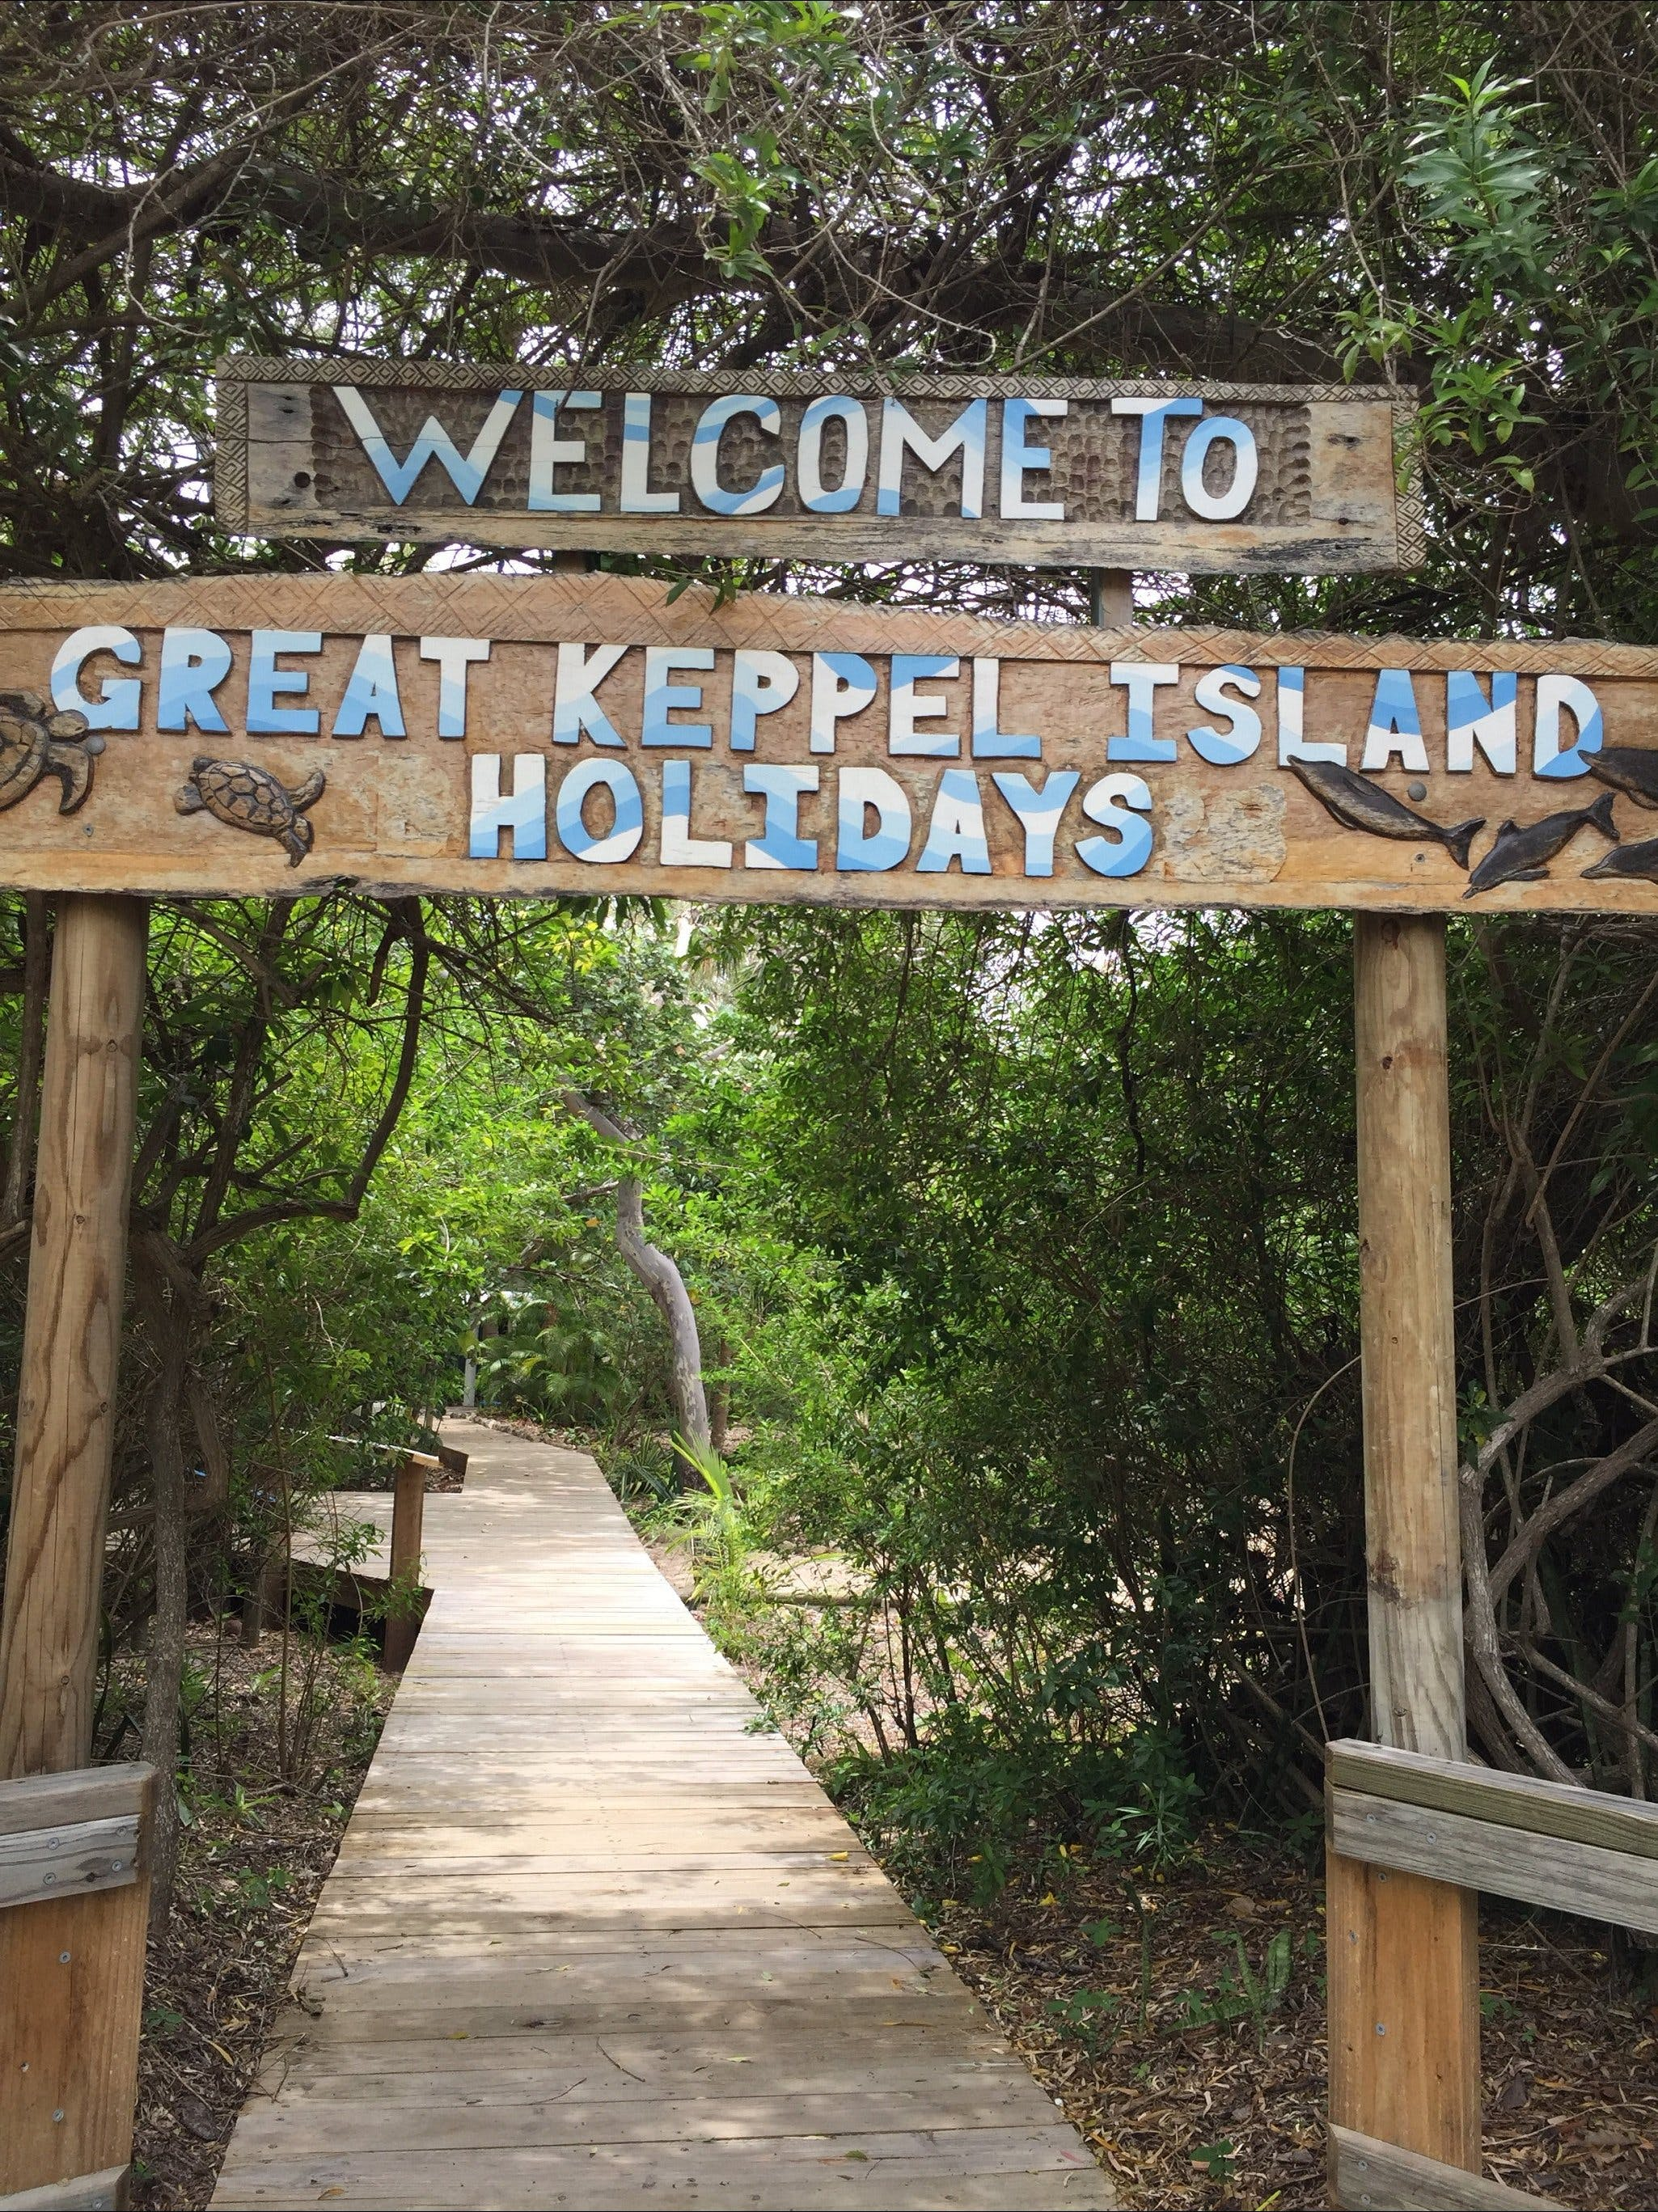 Great Keppel Island Holiday Village - Accommodation Gold Coast